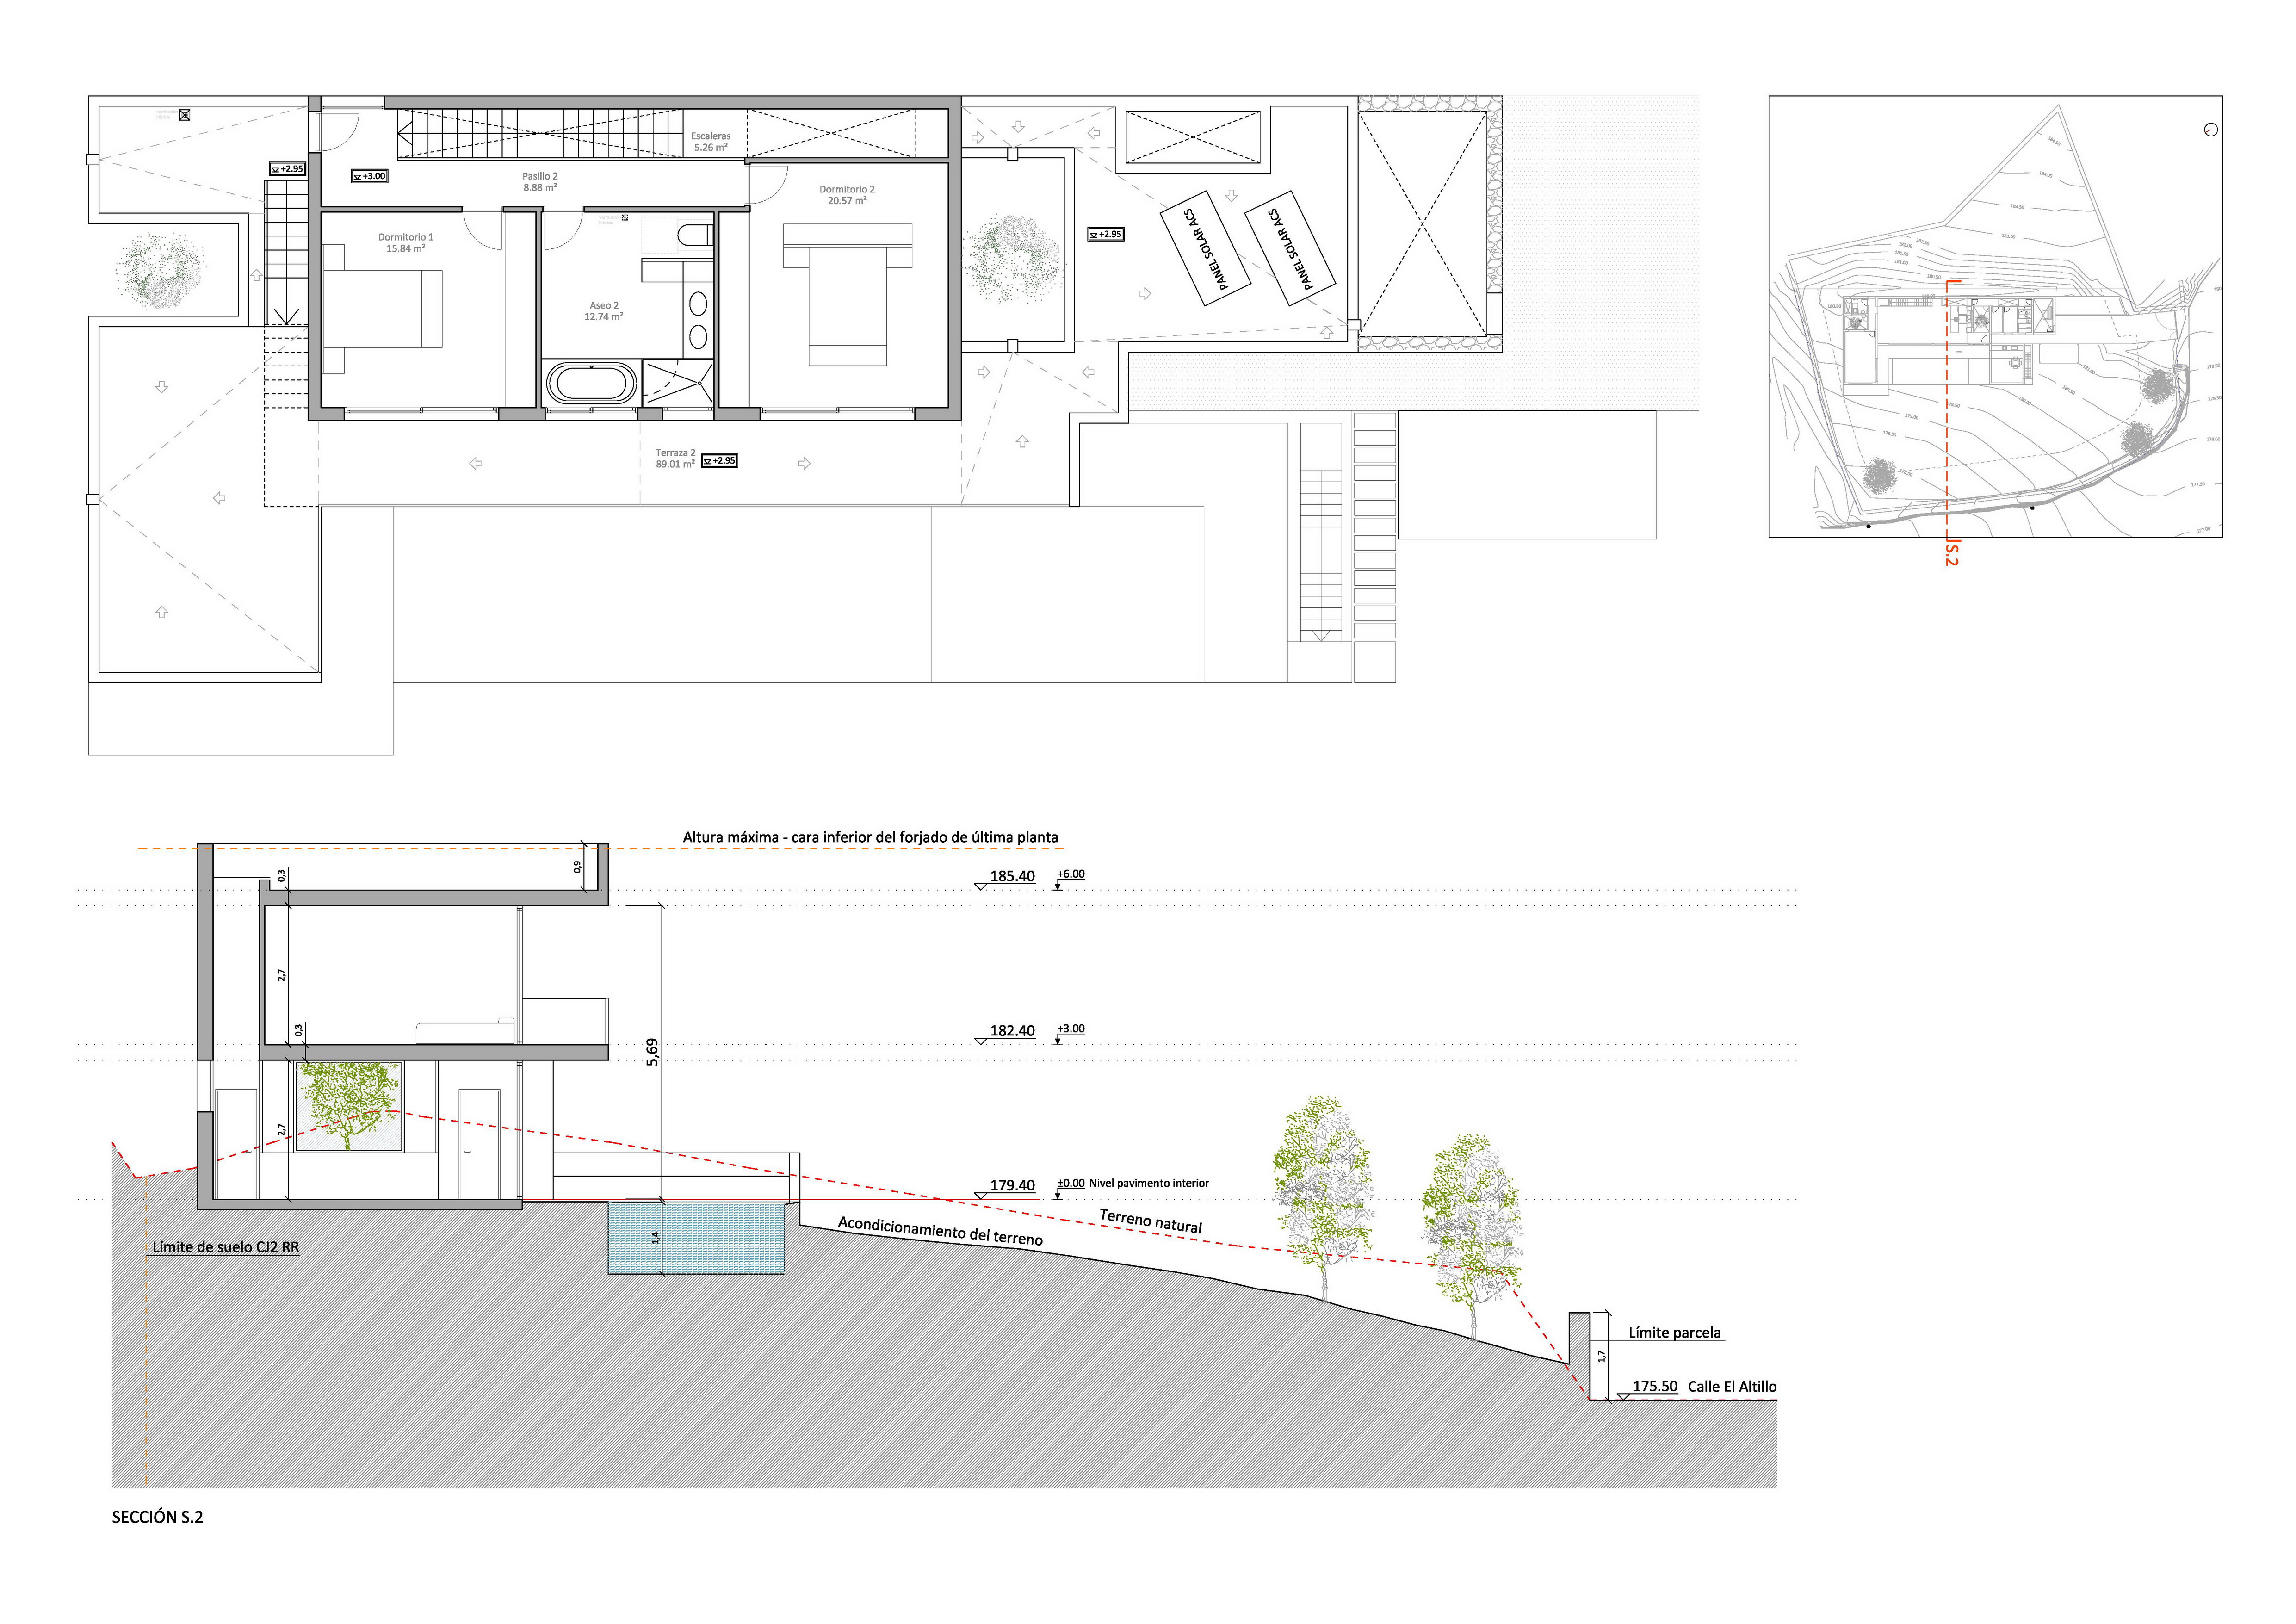 Plans EA 1909 3 ground floor section s2